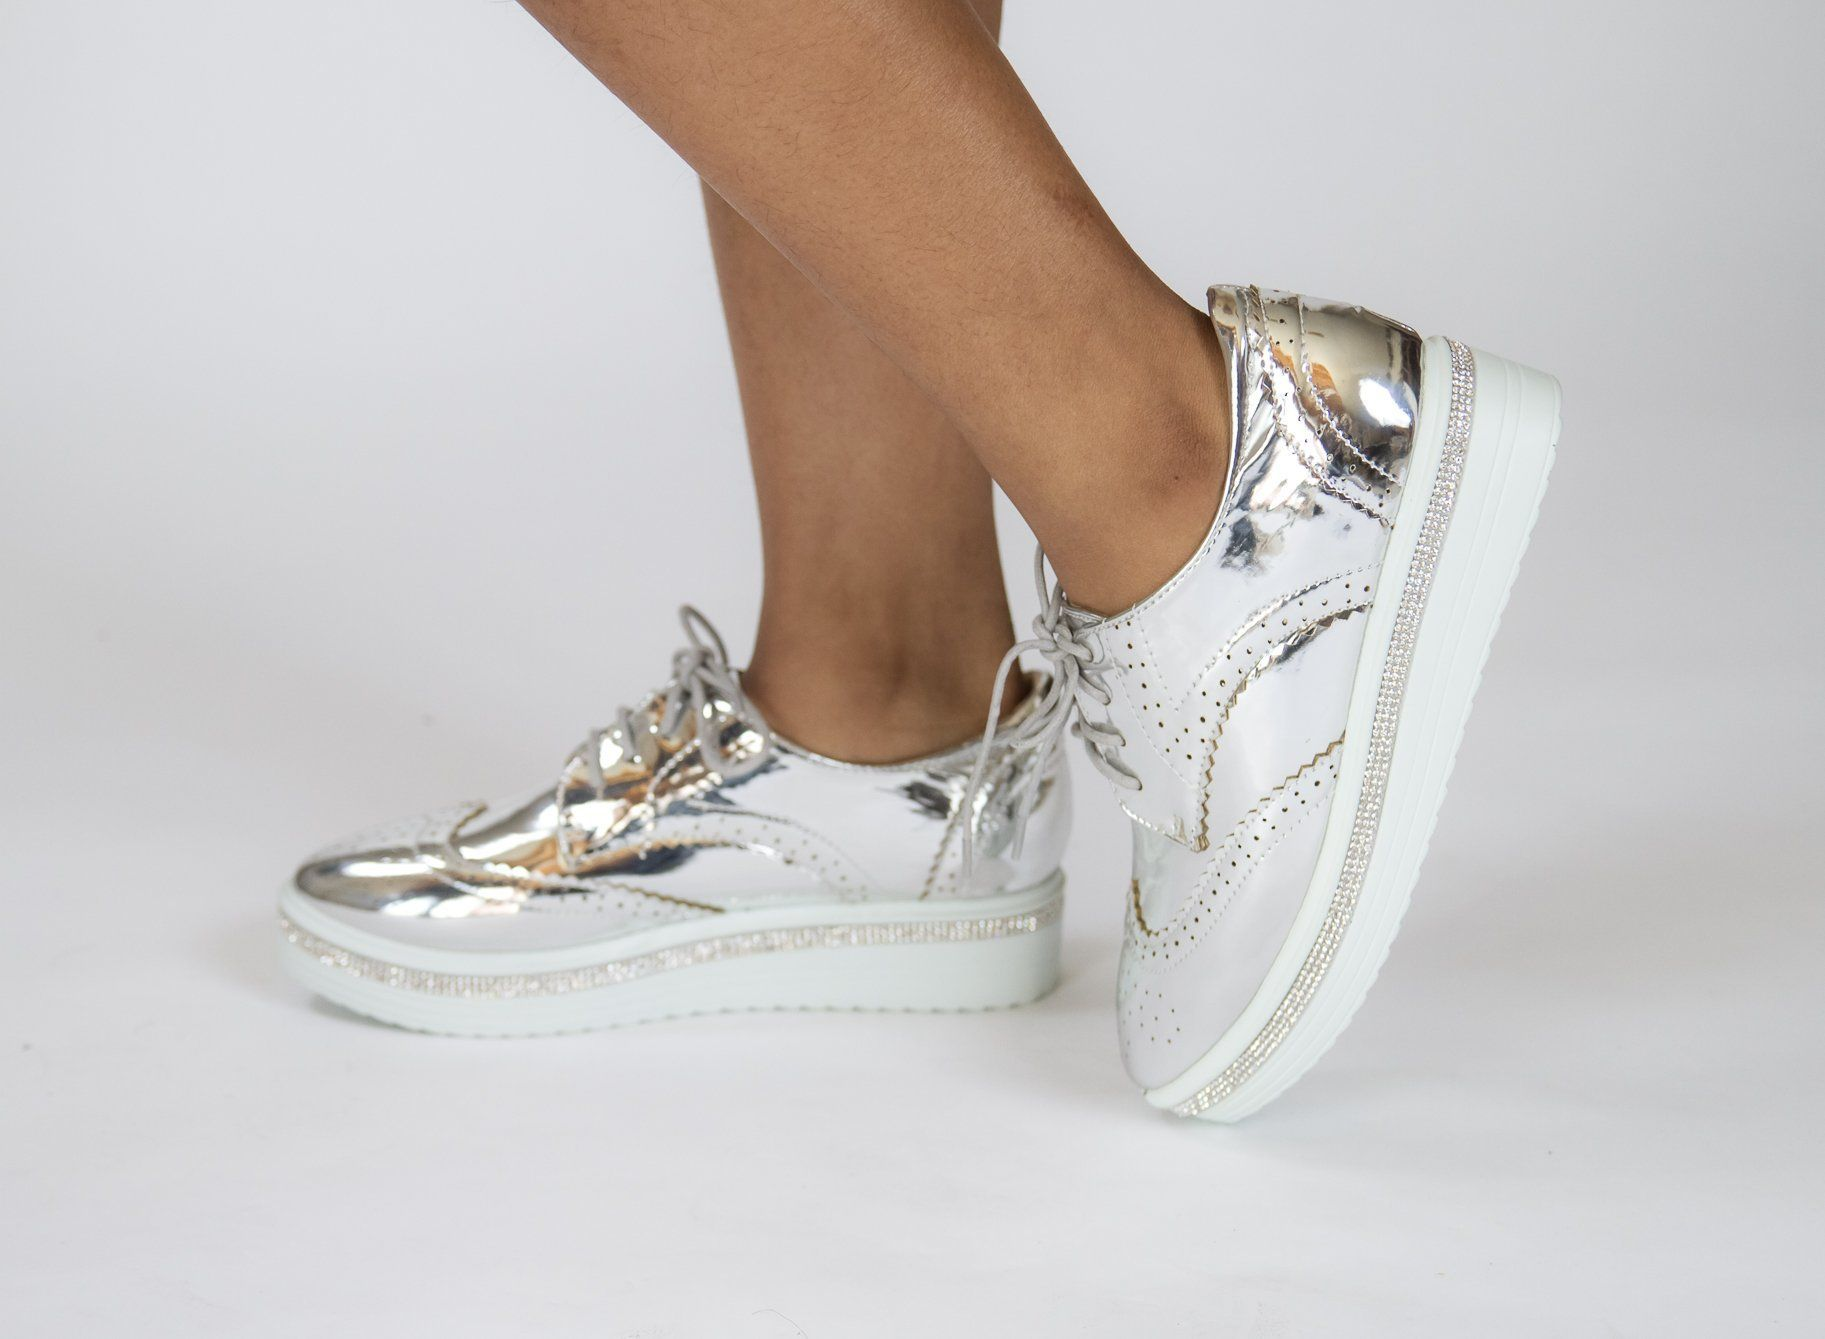 29c9a7a8166871 Krixie Silver Bling Platform Oxford Shoes